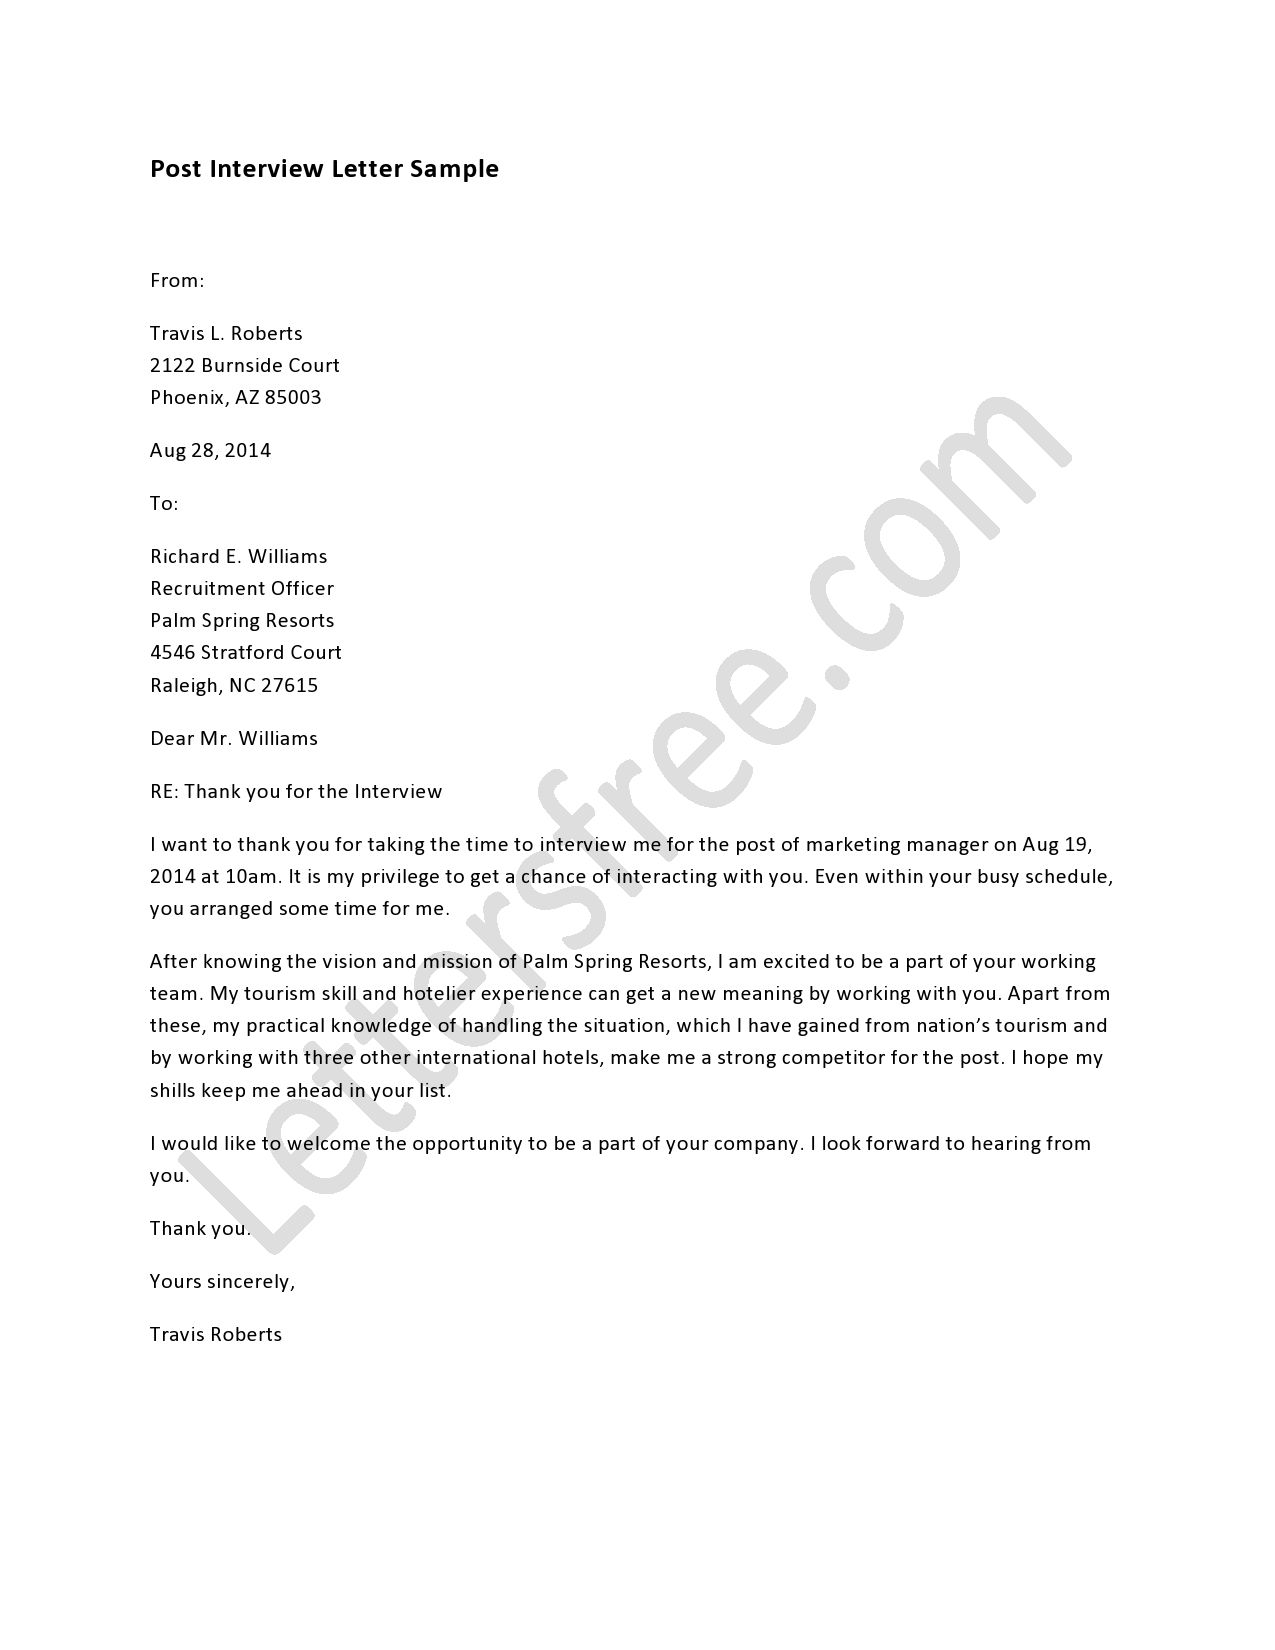 Learn To Frame Formal Post Interview Letter In An Effective Manner. Use The  Template Format For Writing The Best Customized Drafts On Behalf Of The  Company.